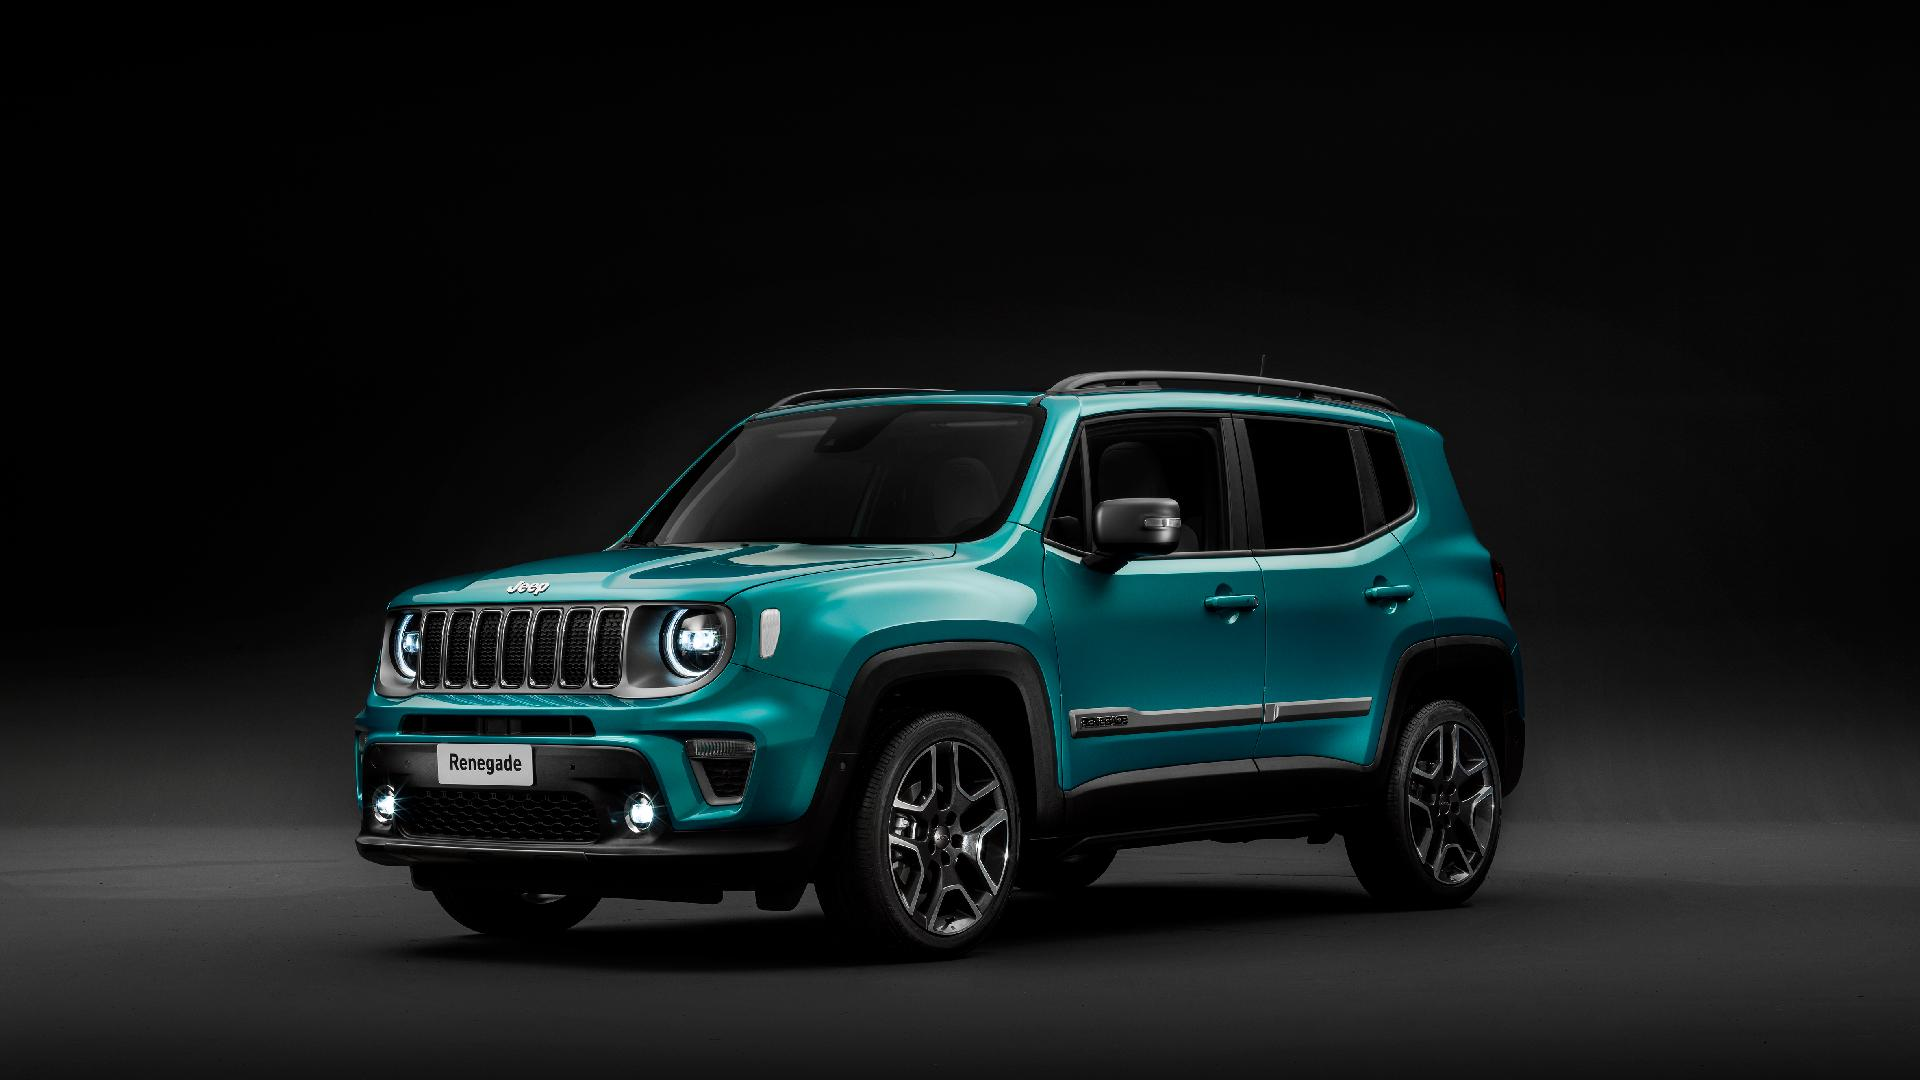 JEEP Renegade 1.3 GSE T4 Turbo Limited 4x4 S&S aut